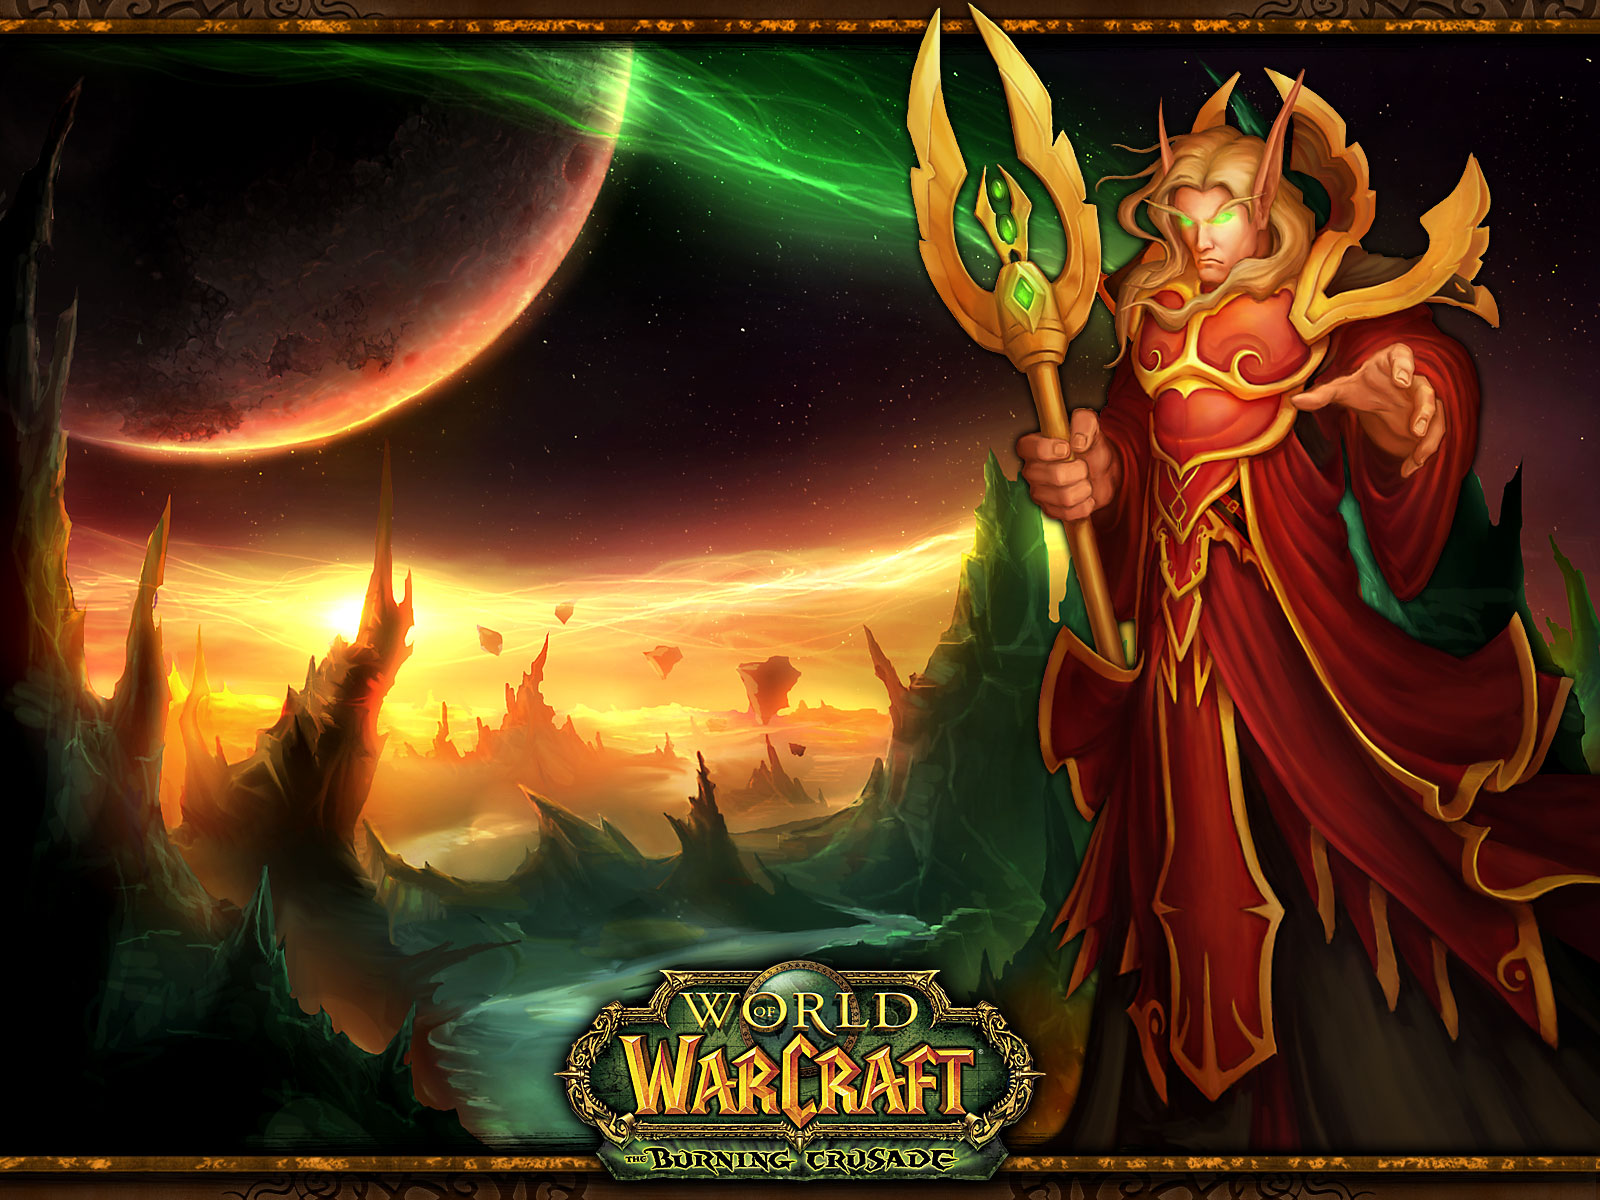 How do i install WoW nudepatch fucked image